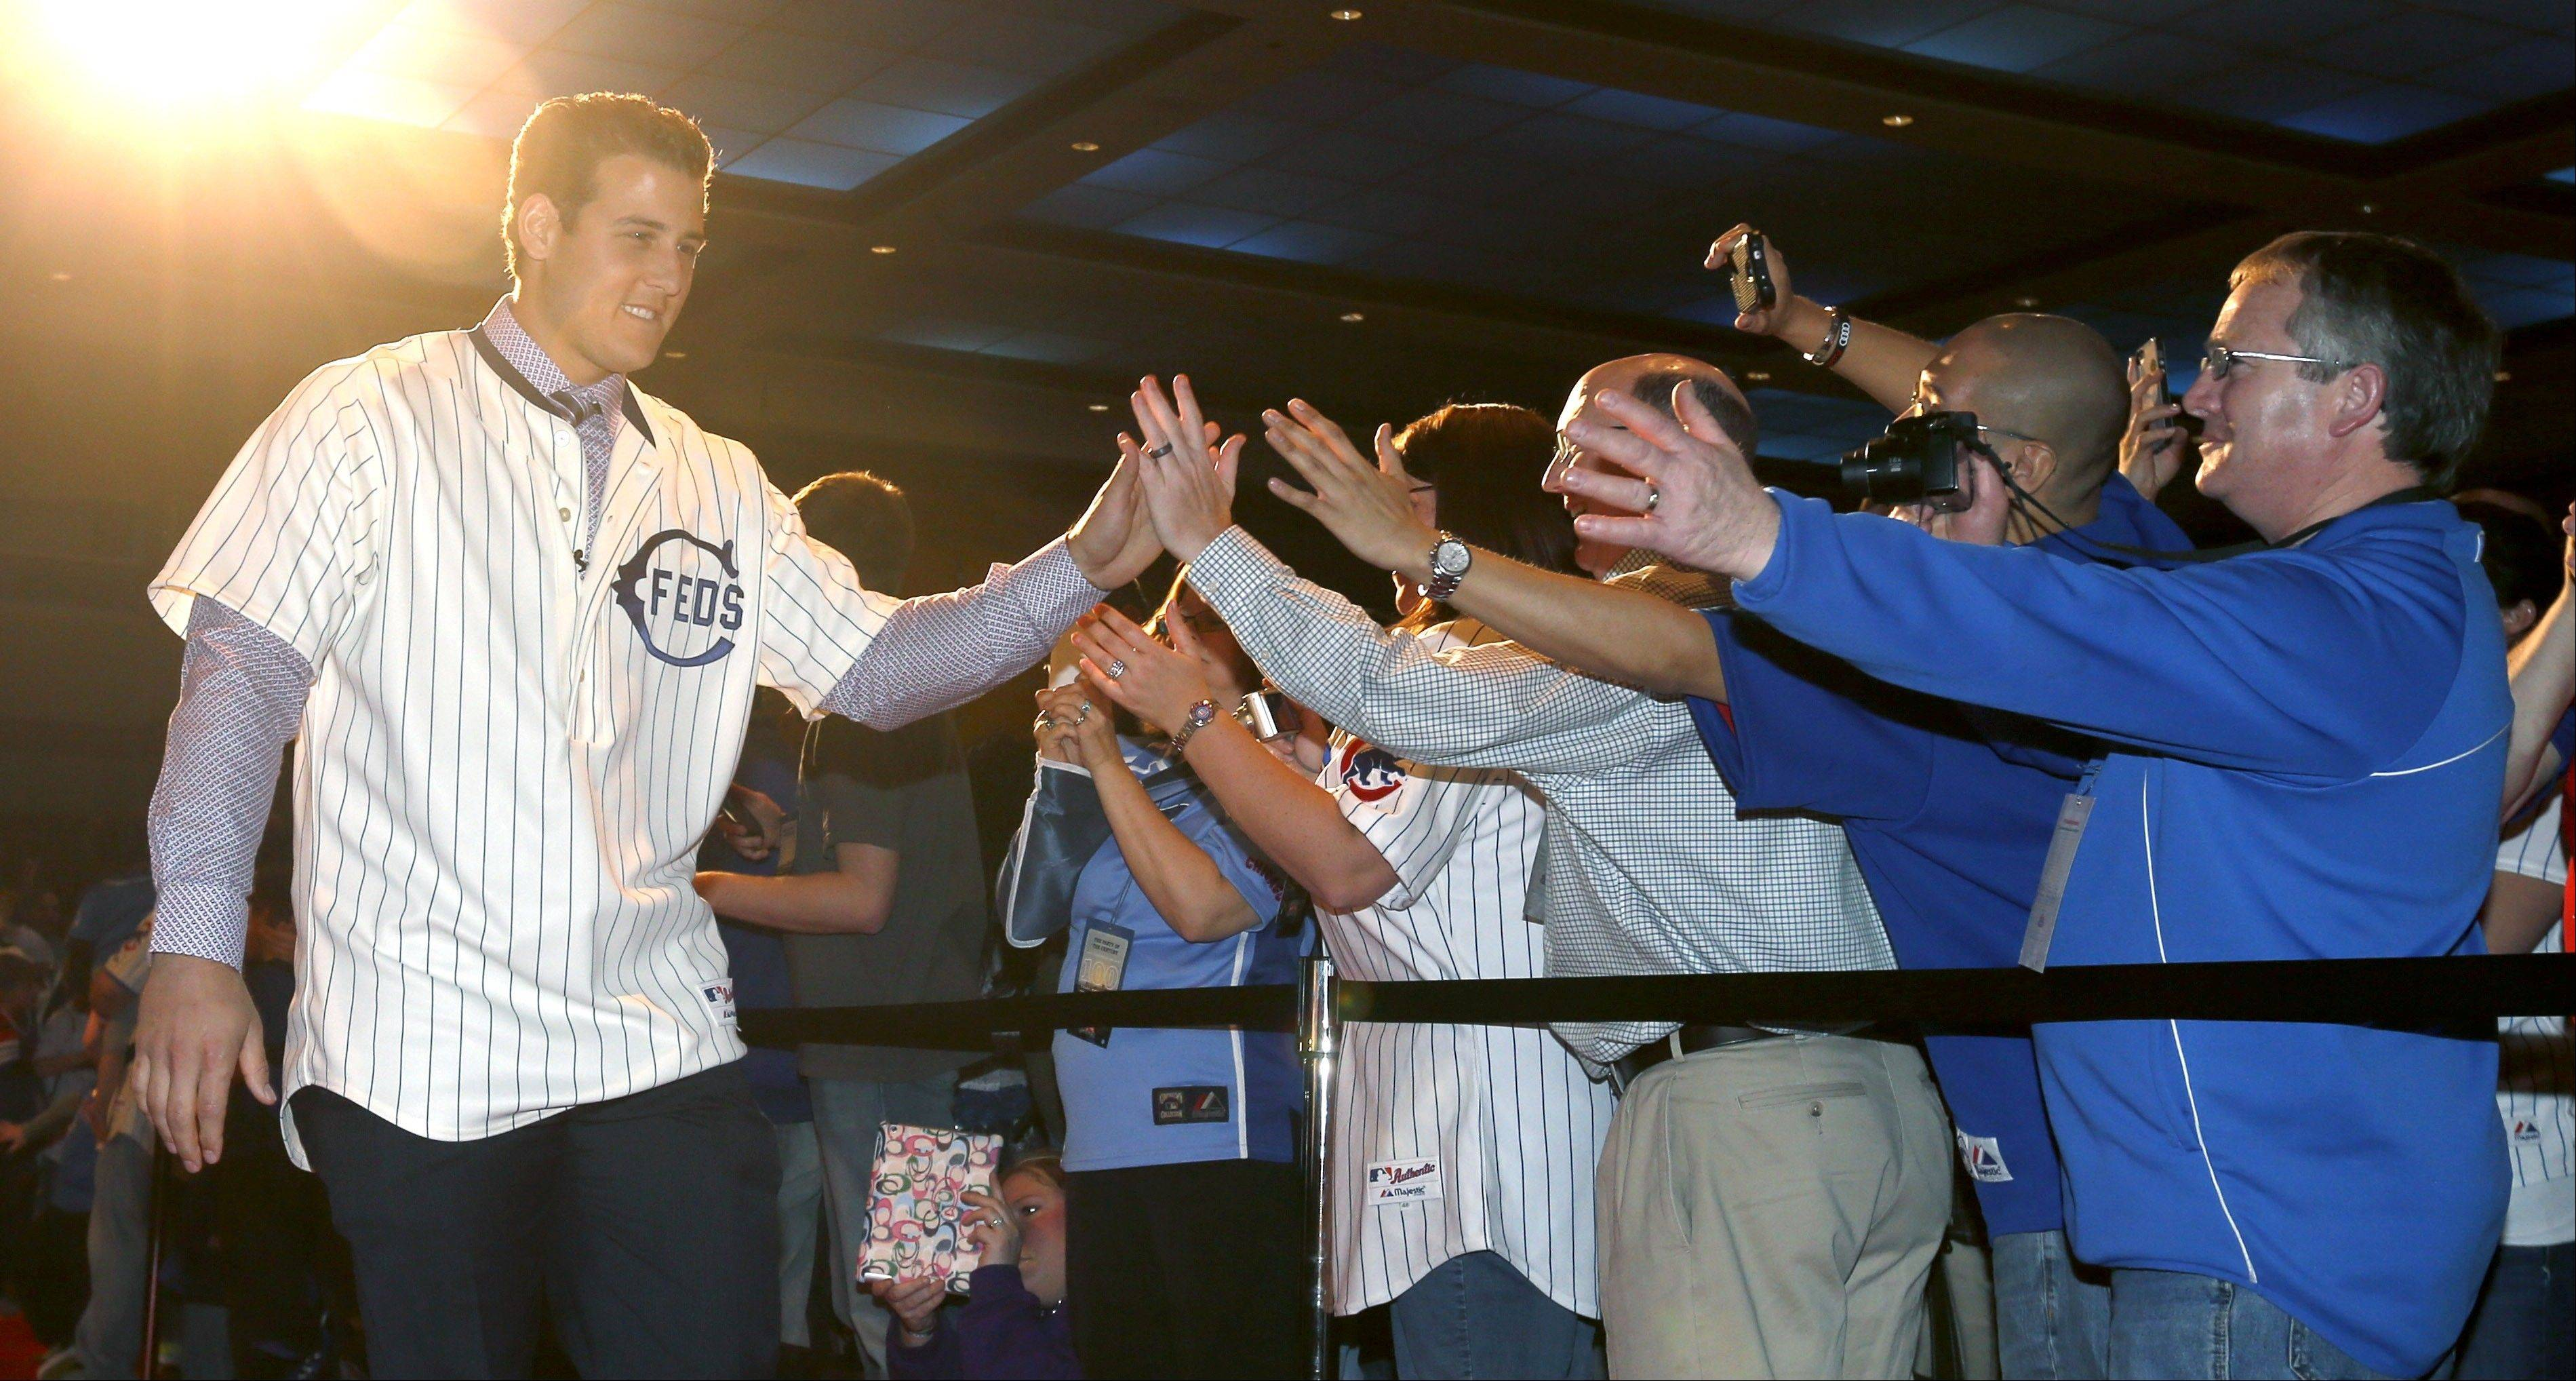 Cubs first baseman Anthony Rizzo greets fans as he is introduced at the Cubs Convention Friday in Chicago.